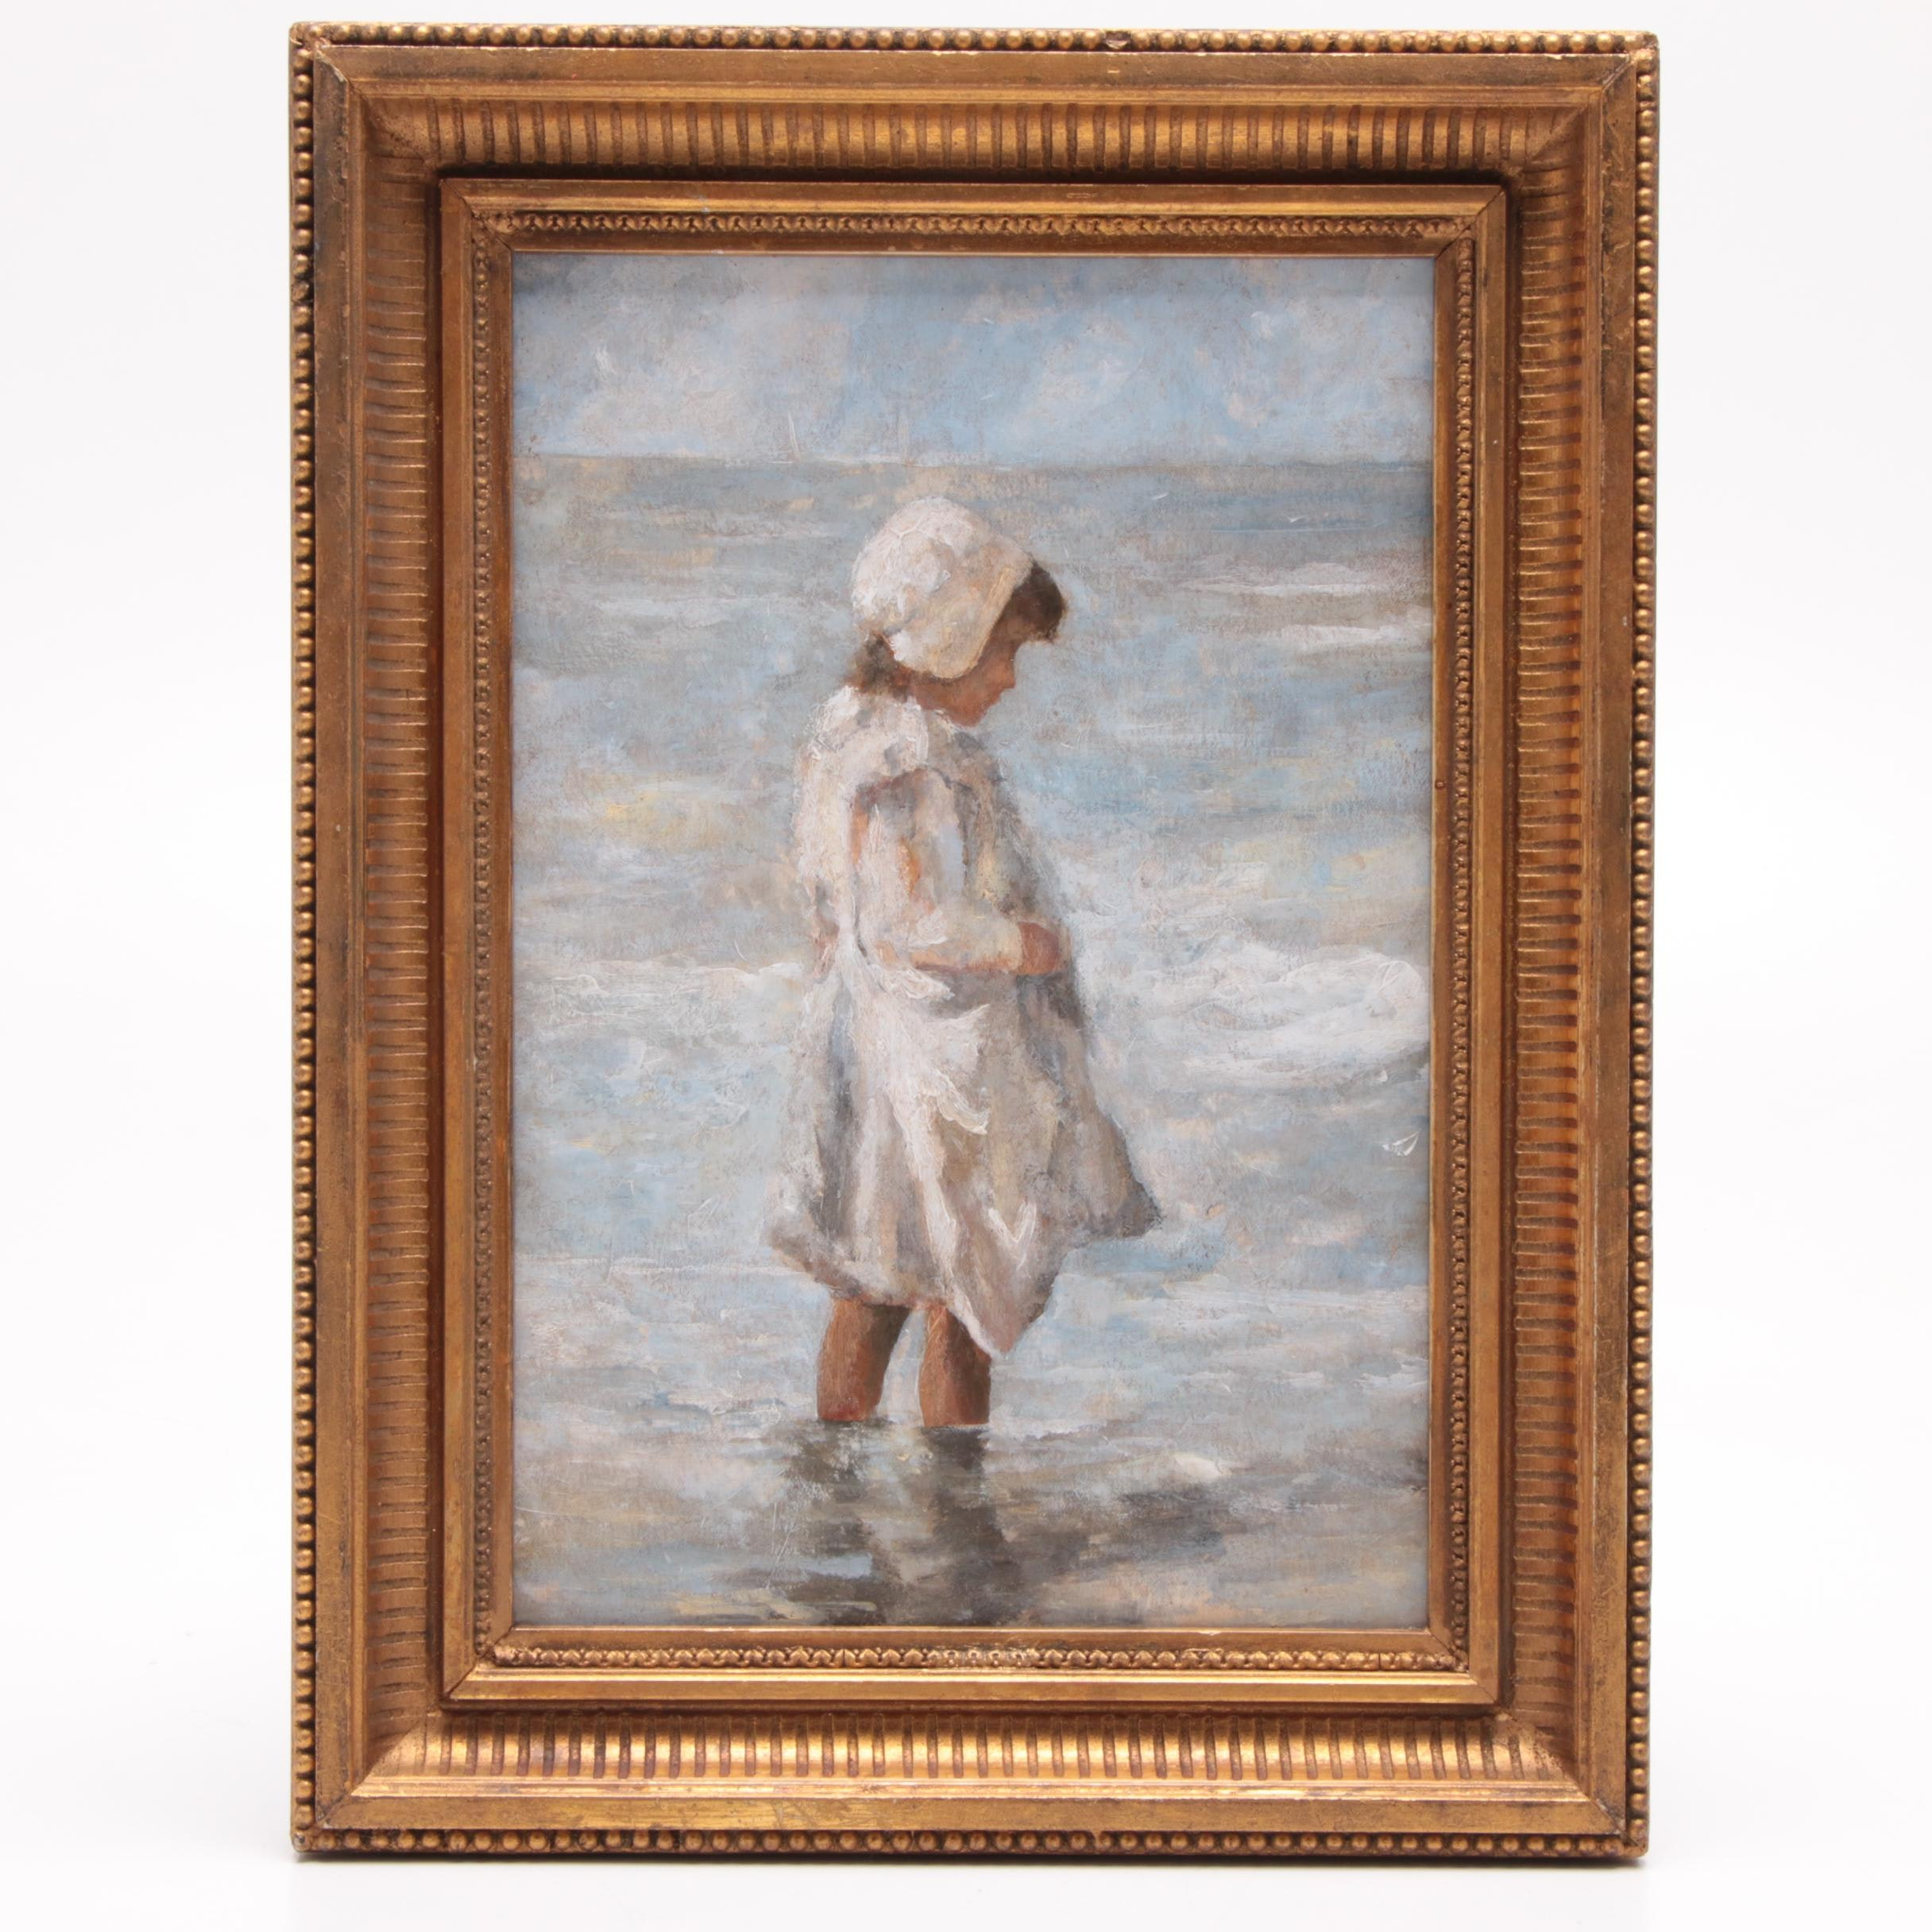 Mabel A Levy Oil Painting of Girl at the Shore